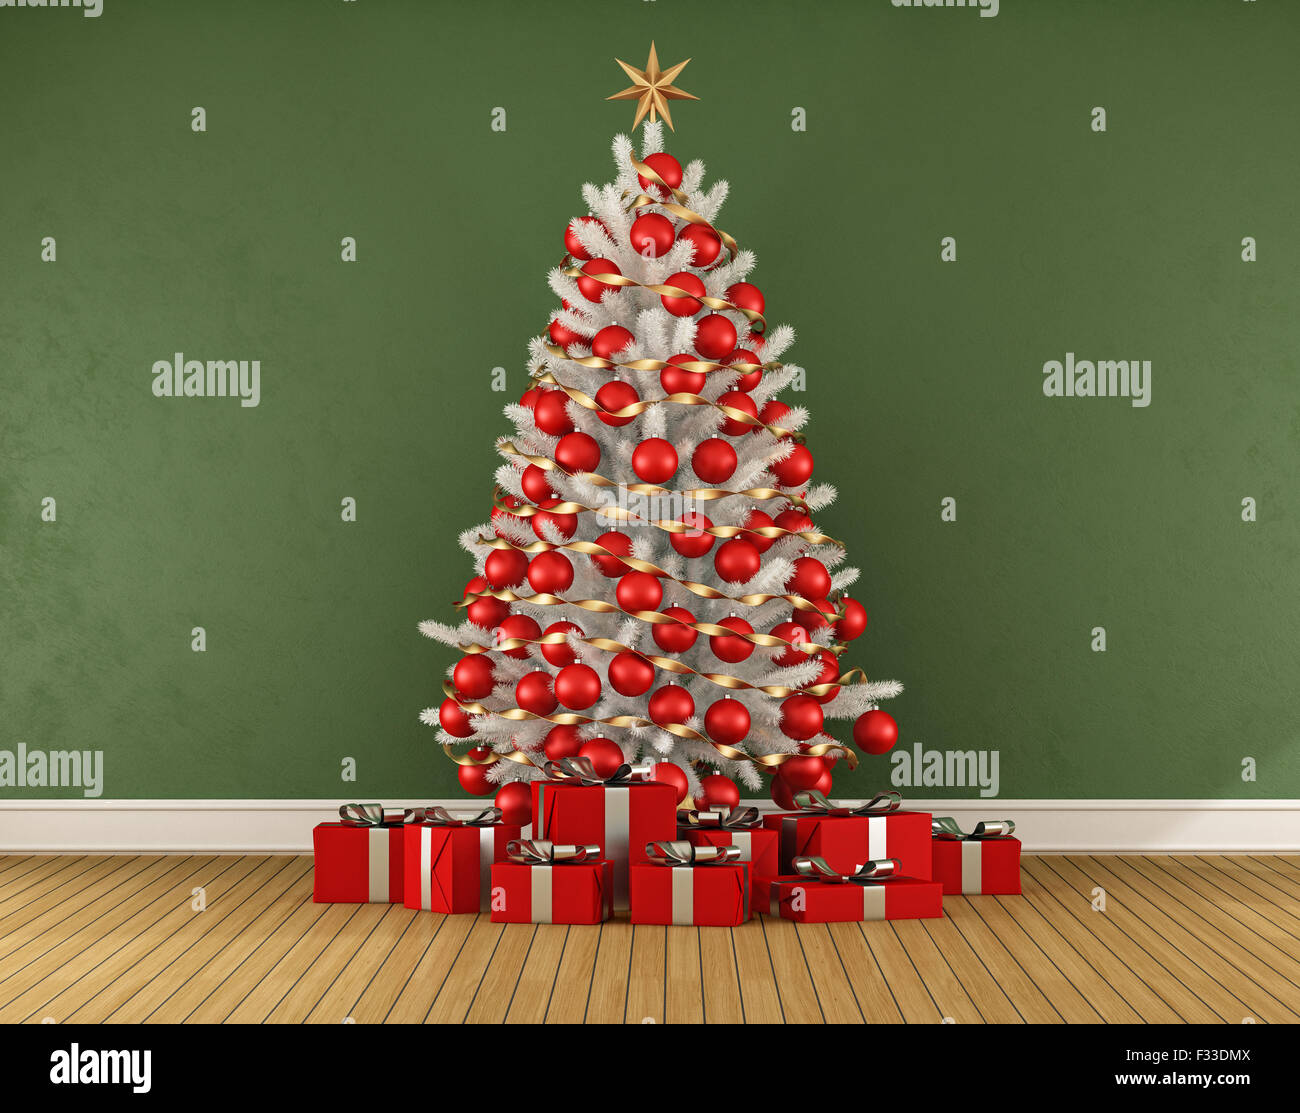 Red and white christmas tree decorating ideas - Green Room With White Christmas Tree With Red Decoration 3d Rendering